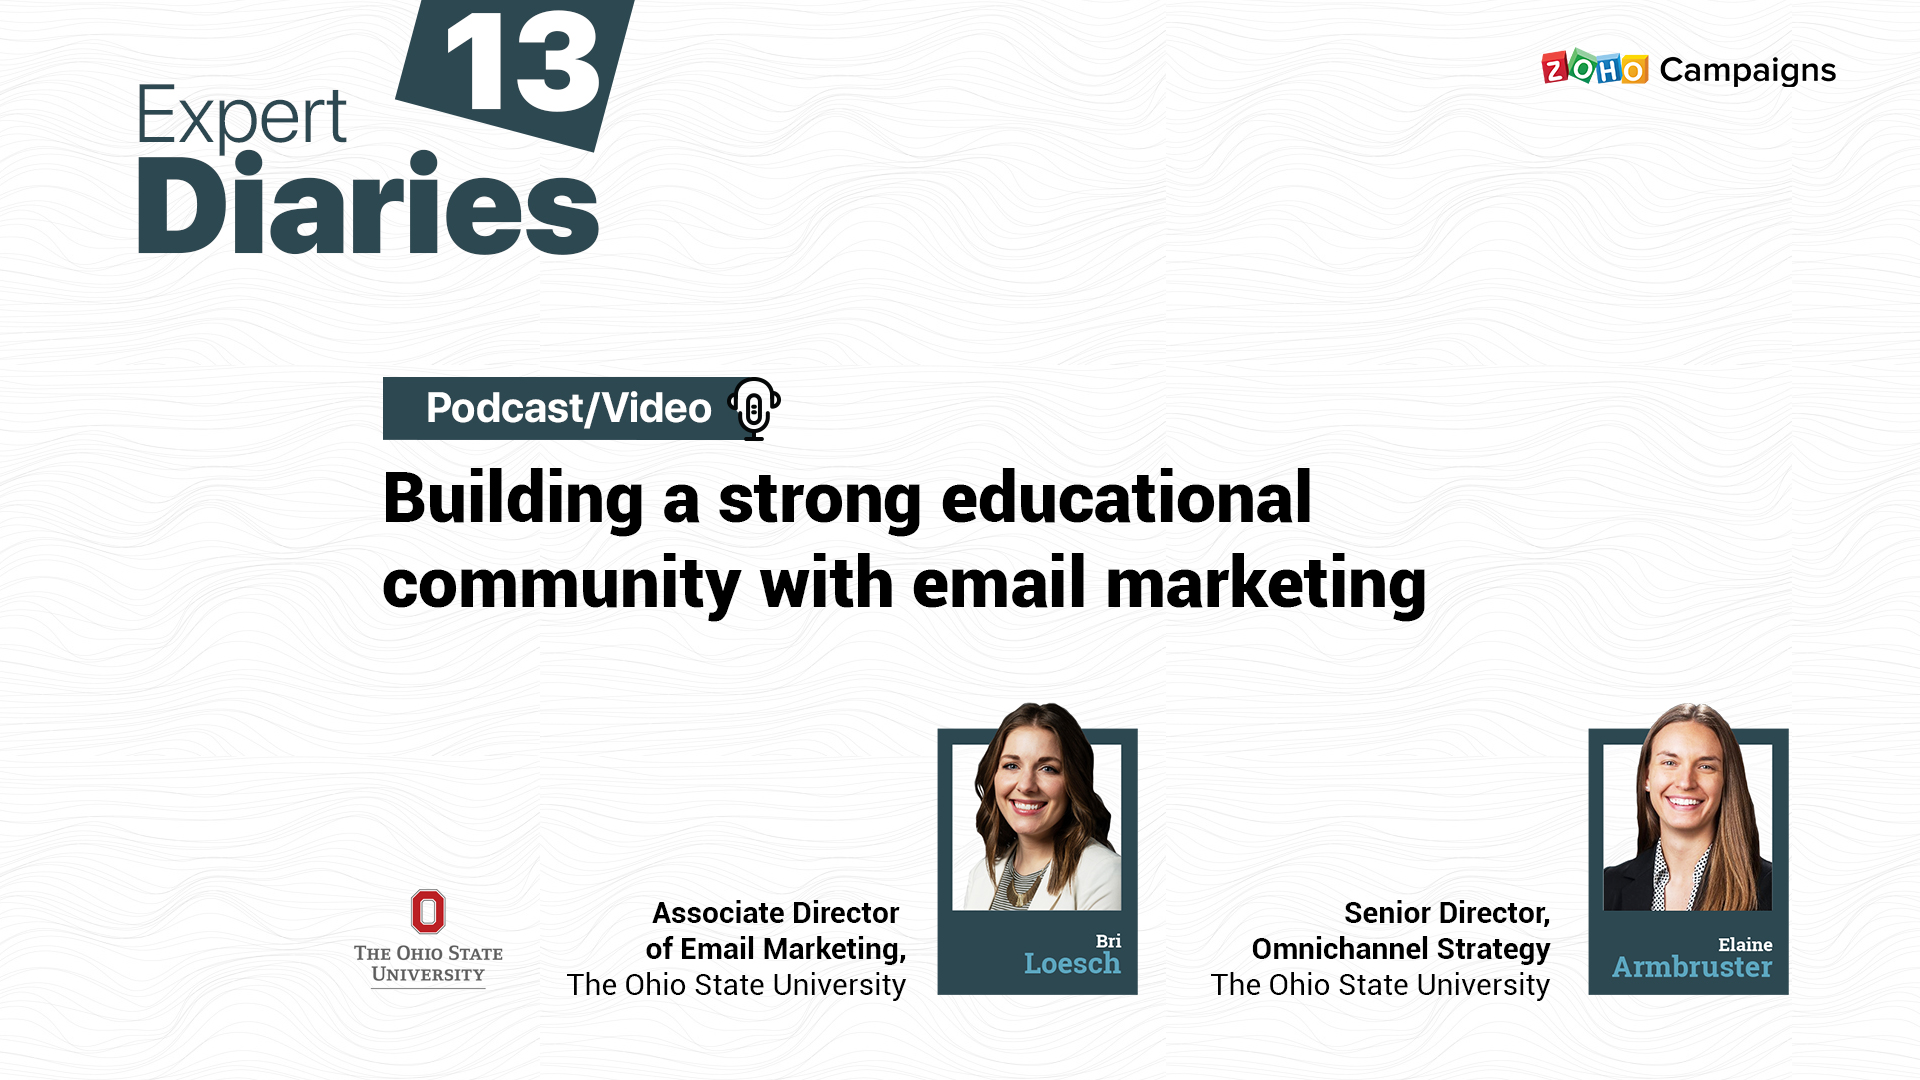 Building a strong educational community with email marketing